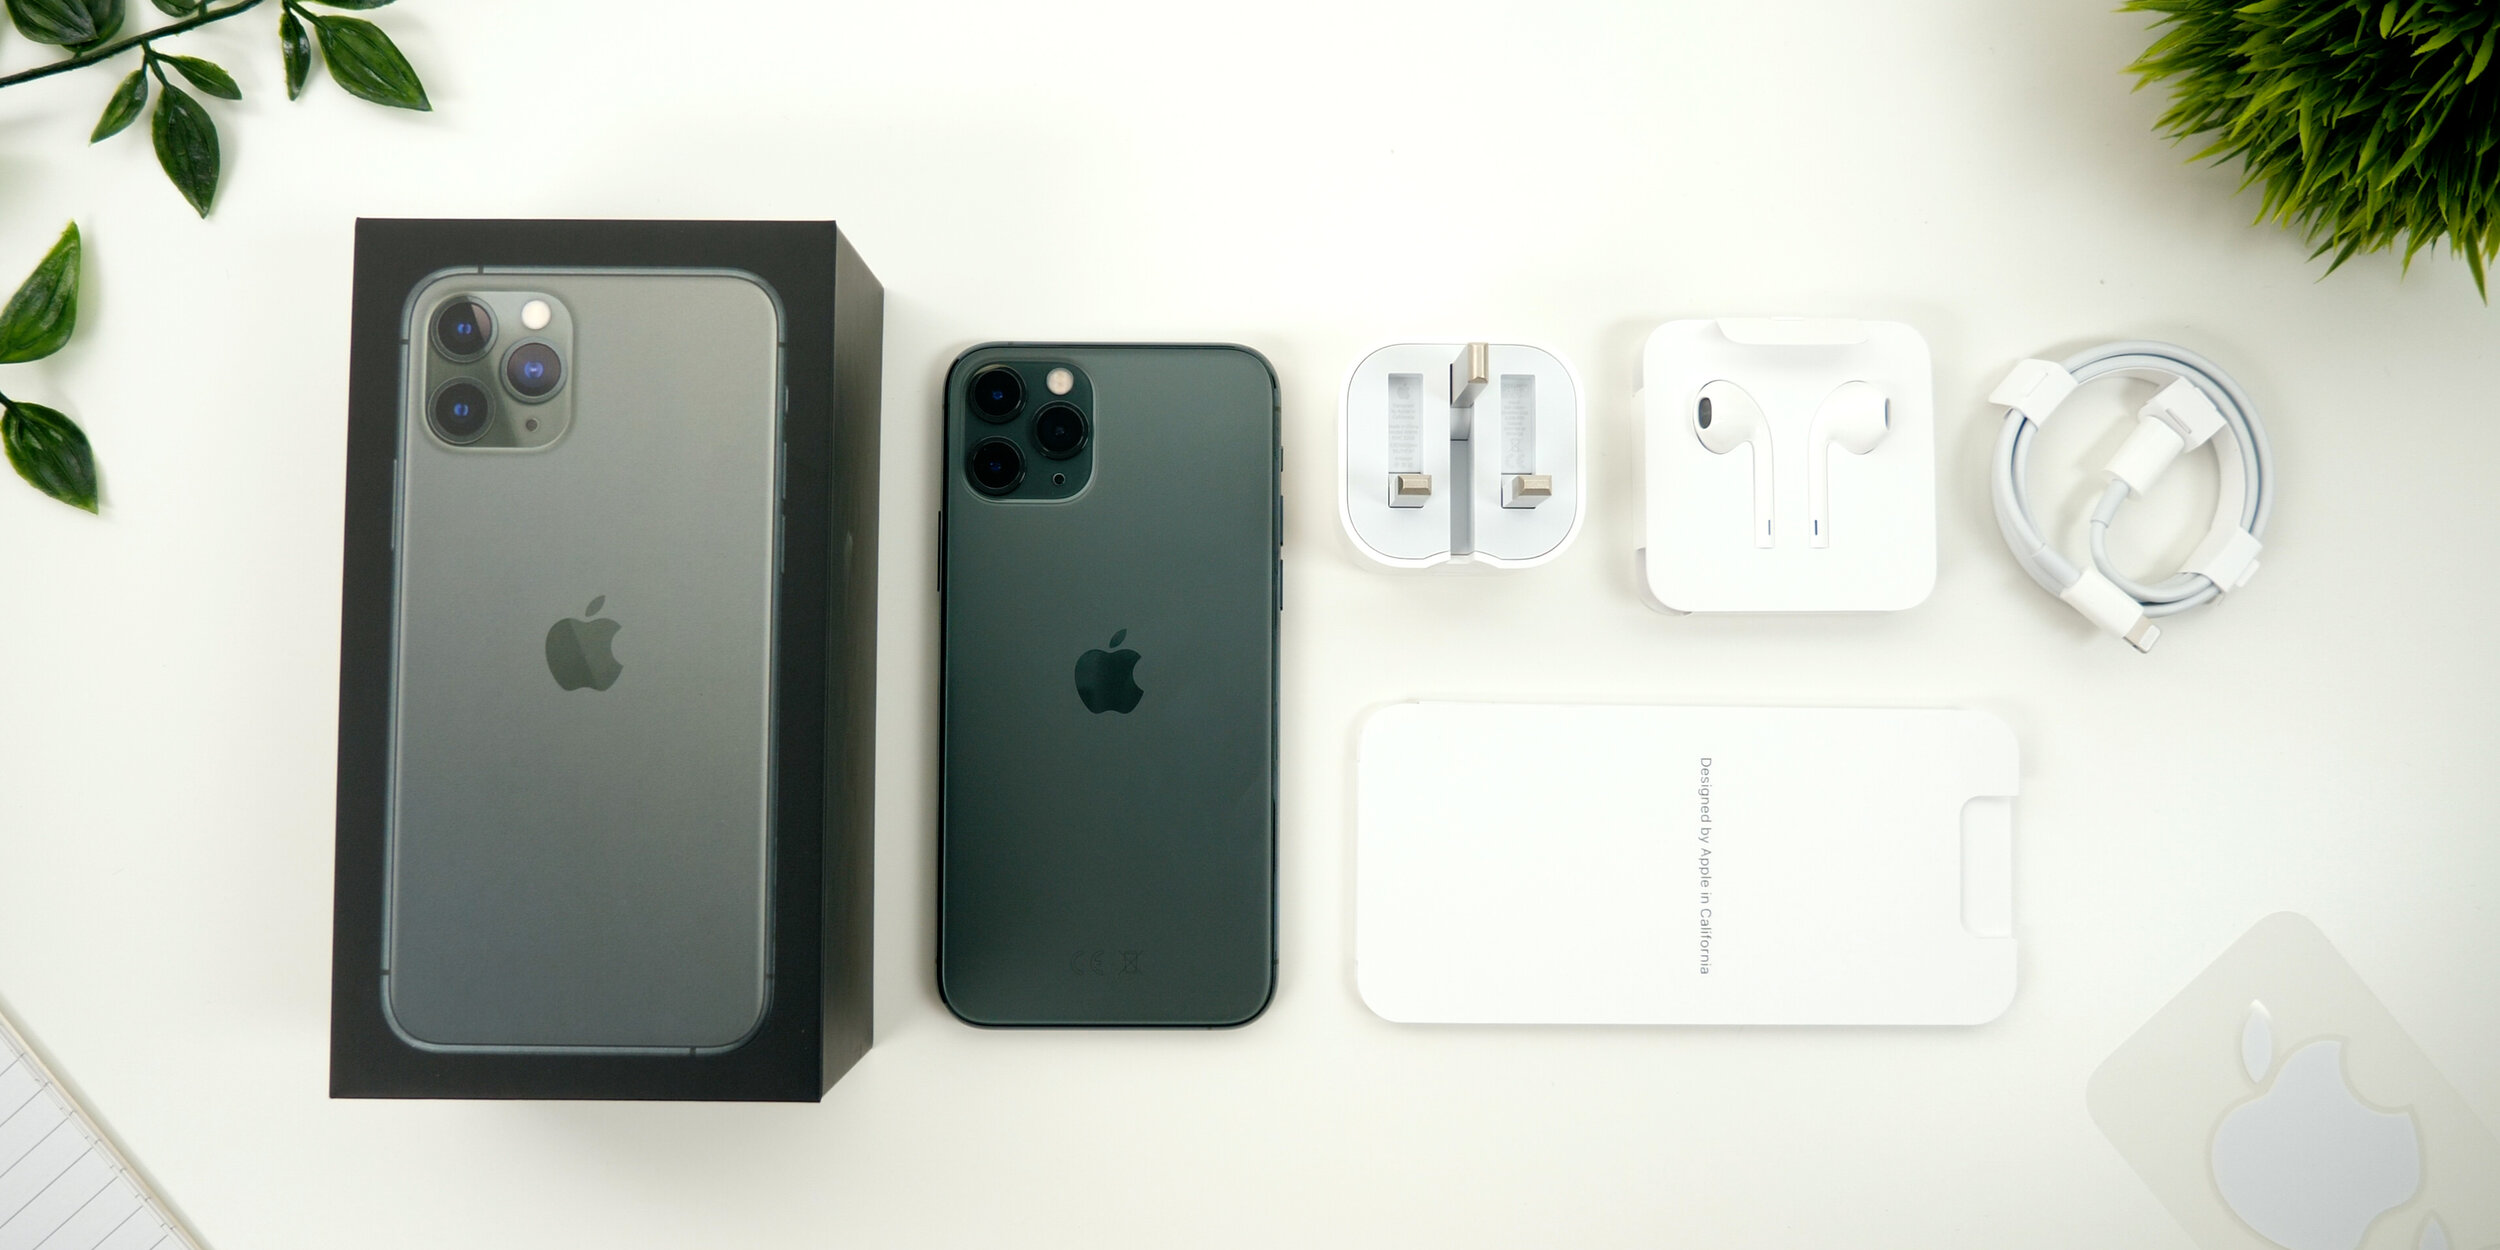 Everything you get inside of the iPhone 11 Pro Max box